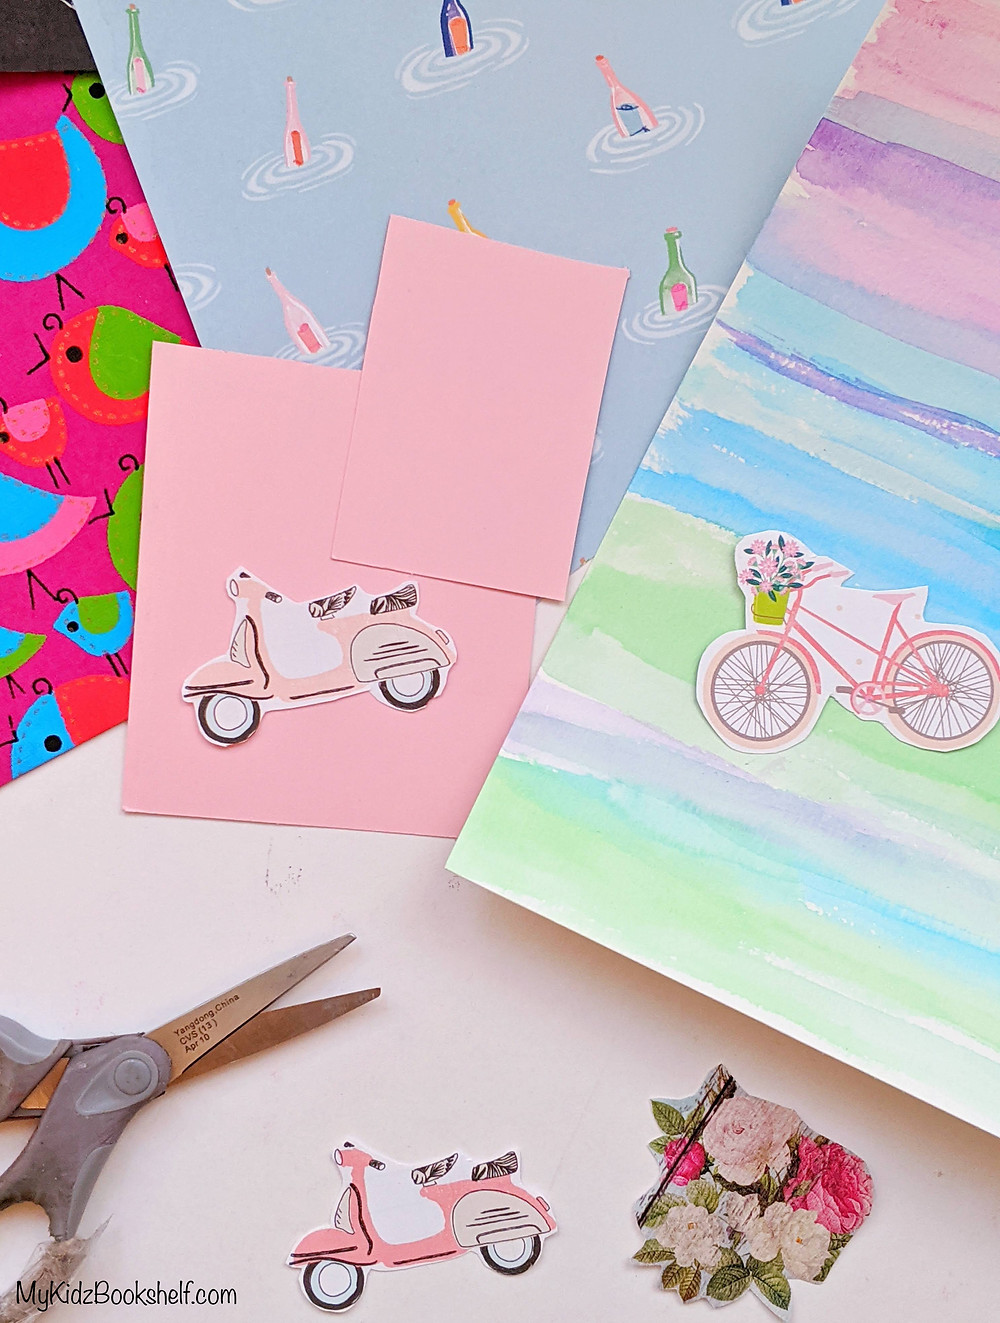 DIY collage craft shows scissors with cutout images of mopeds and flowers